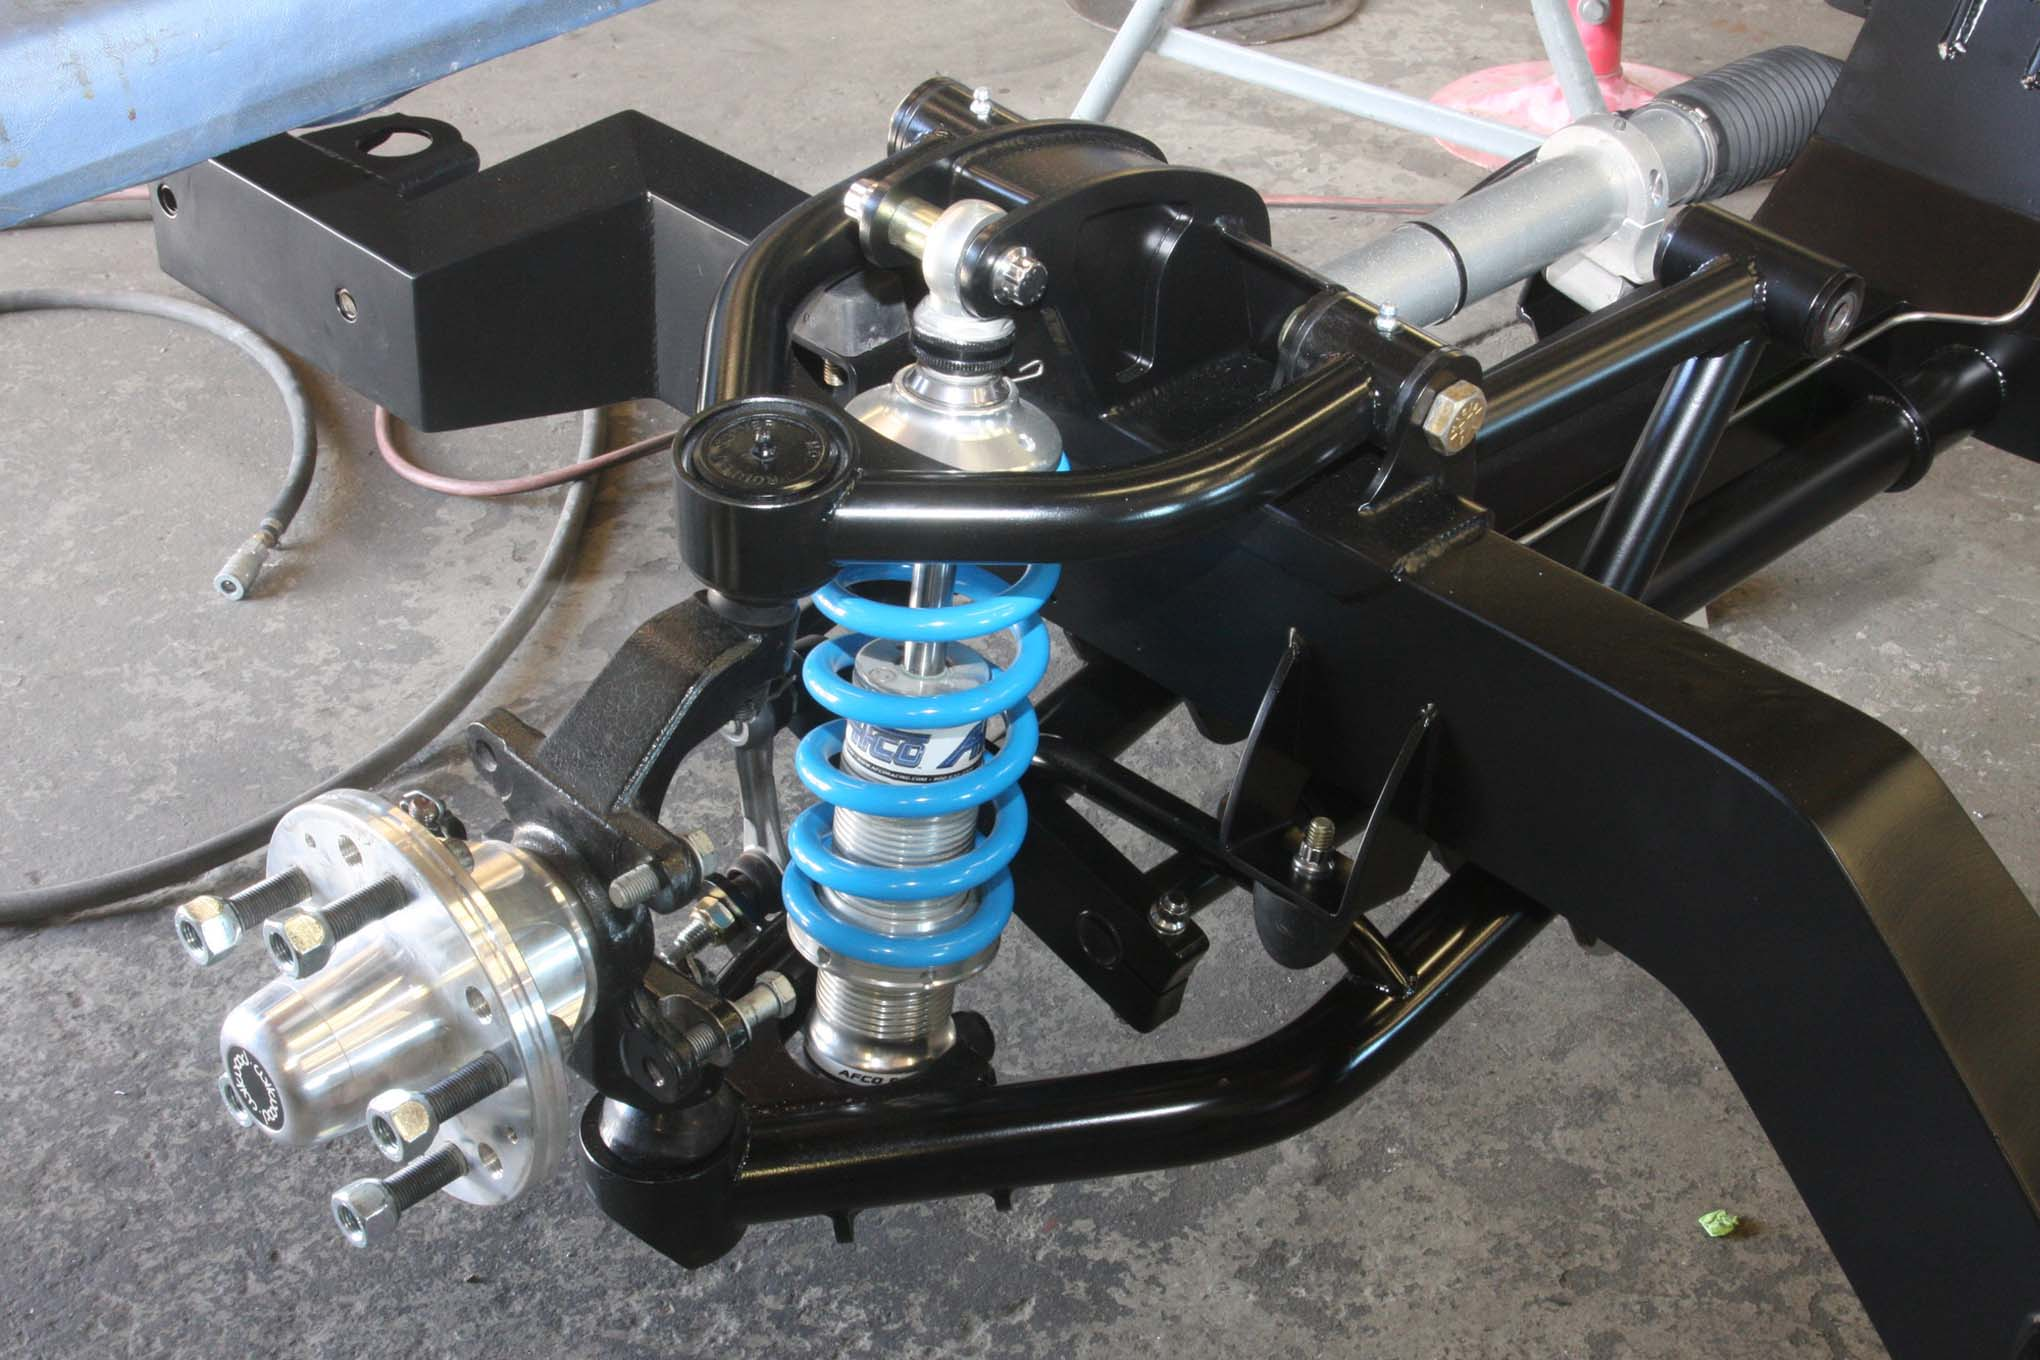 Here the Roadster Shops front suspension has been fitted with Wilwood's aluminum hubs. The coilovers are from AFCO.